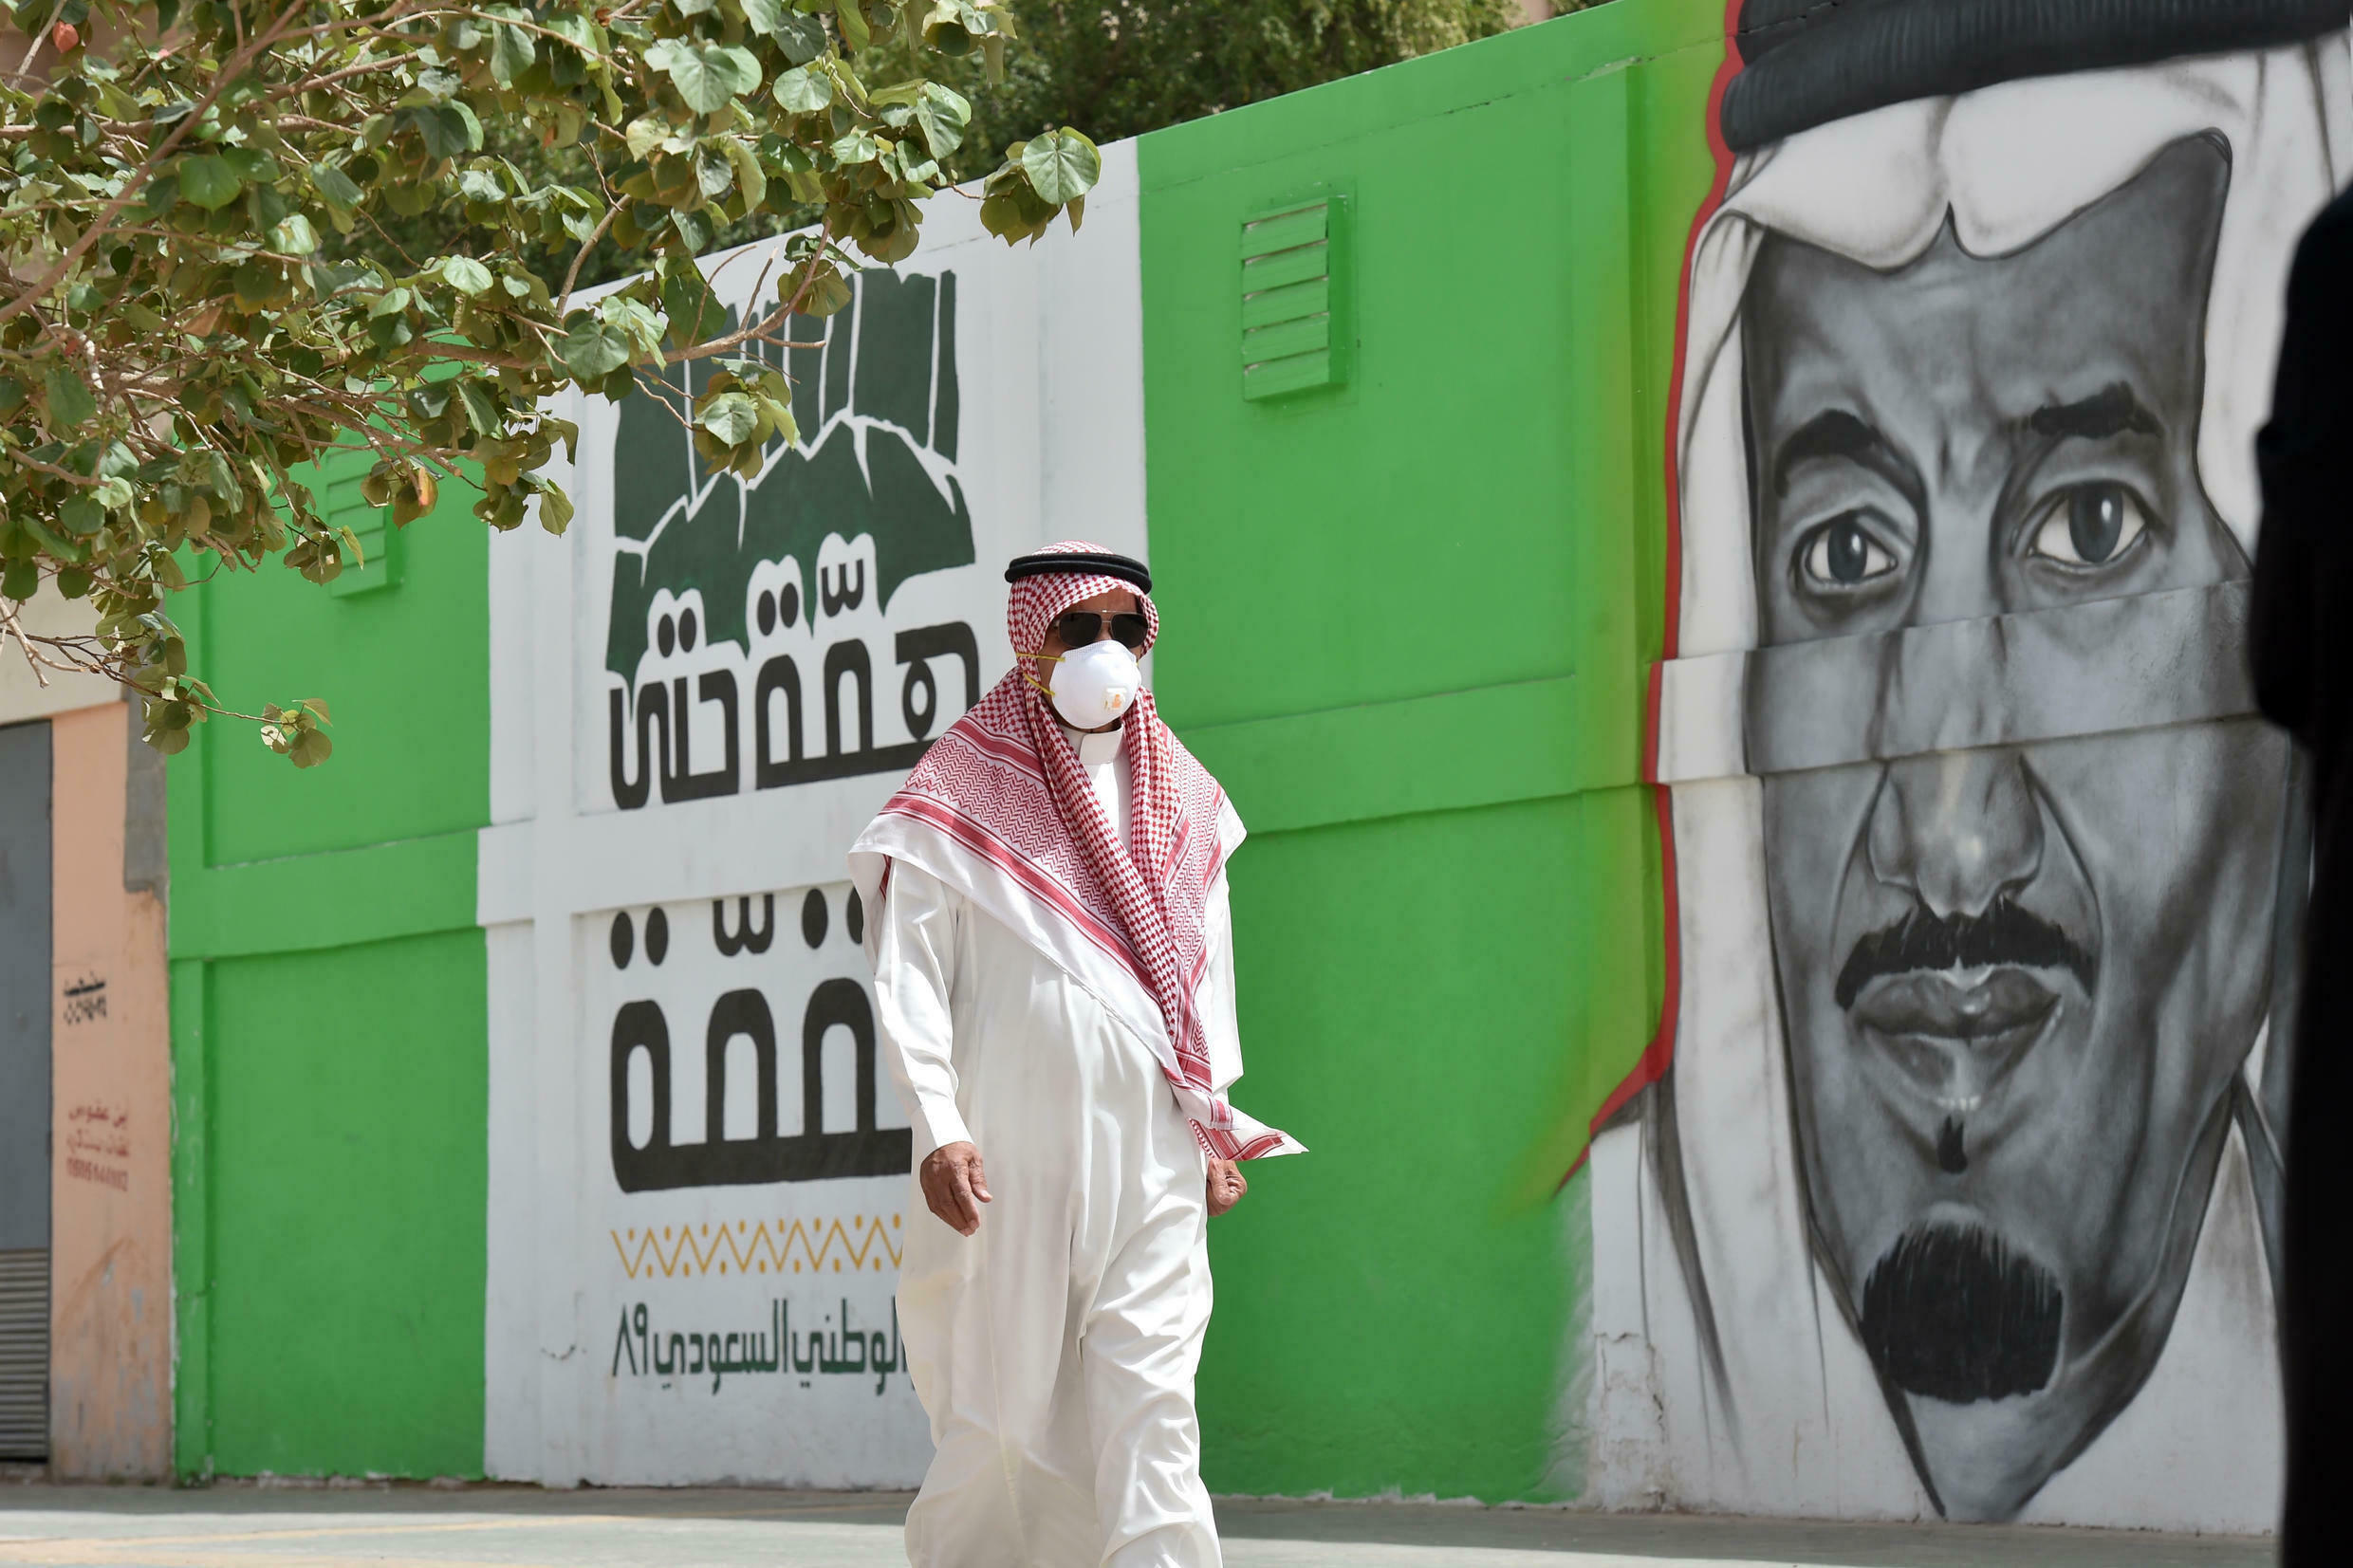 Saudi Arabia's economy is bracing for the worst amid the coronavirus pandemic and tumbling oil prices